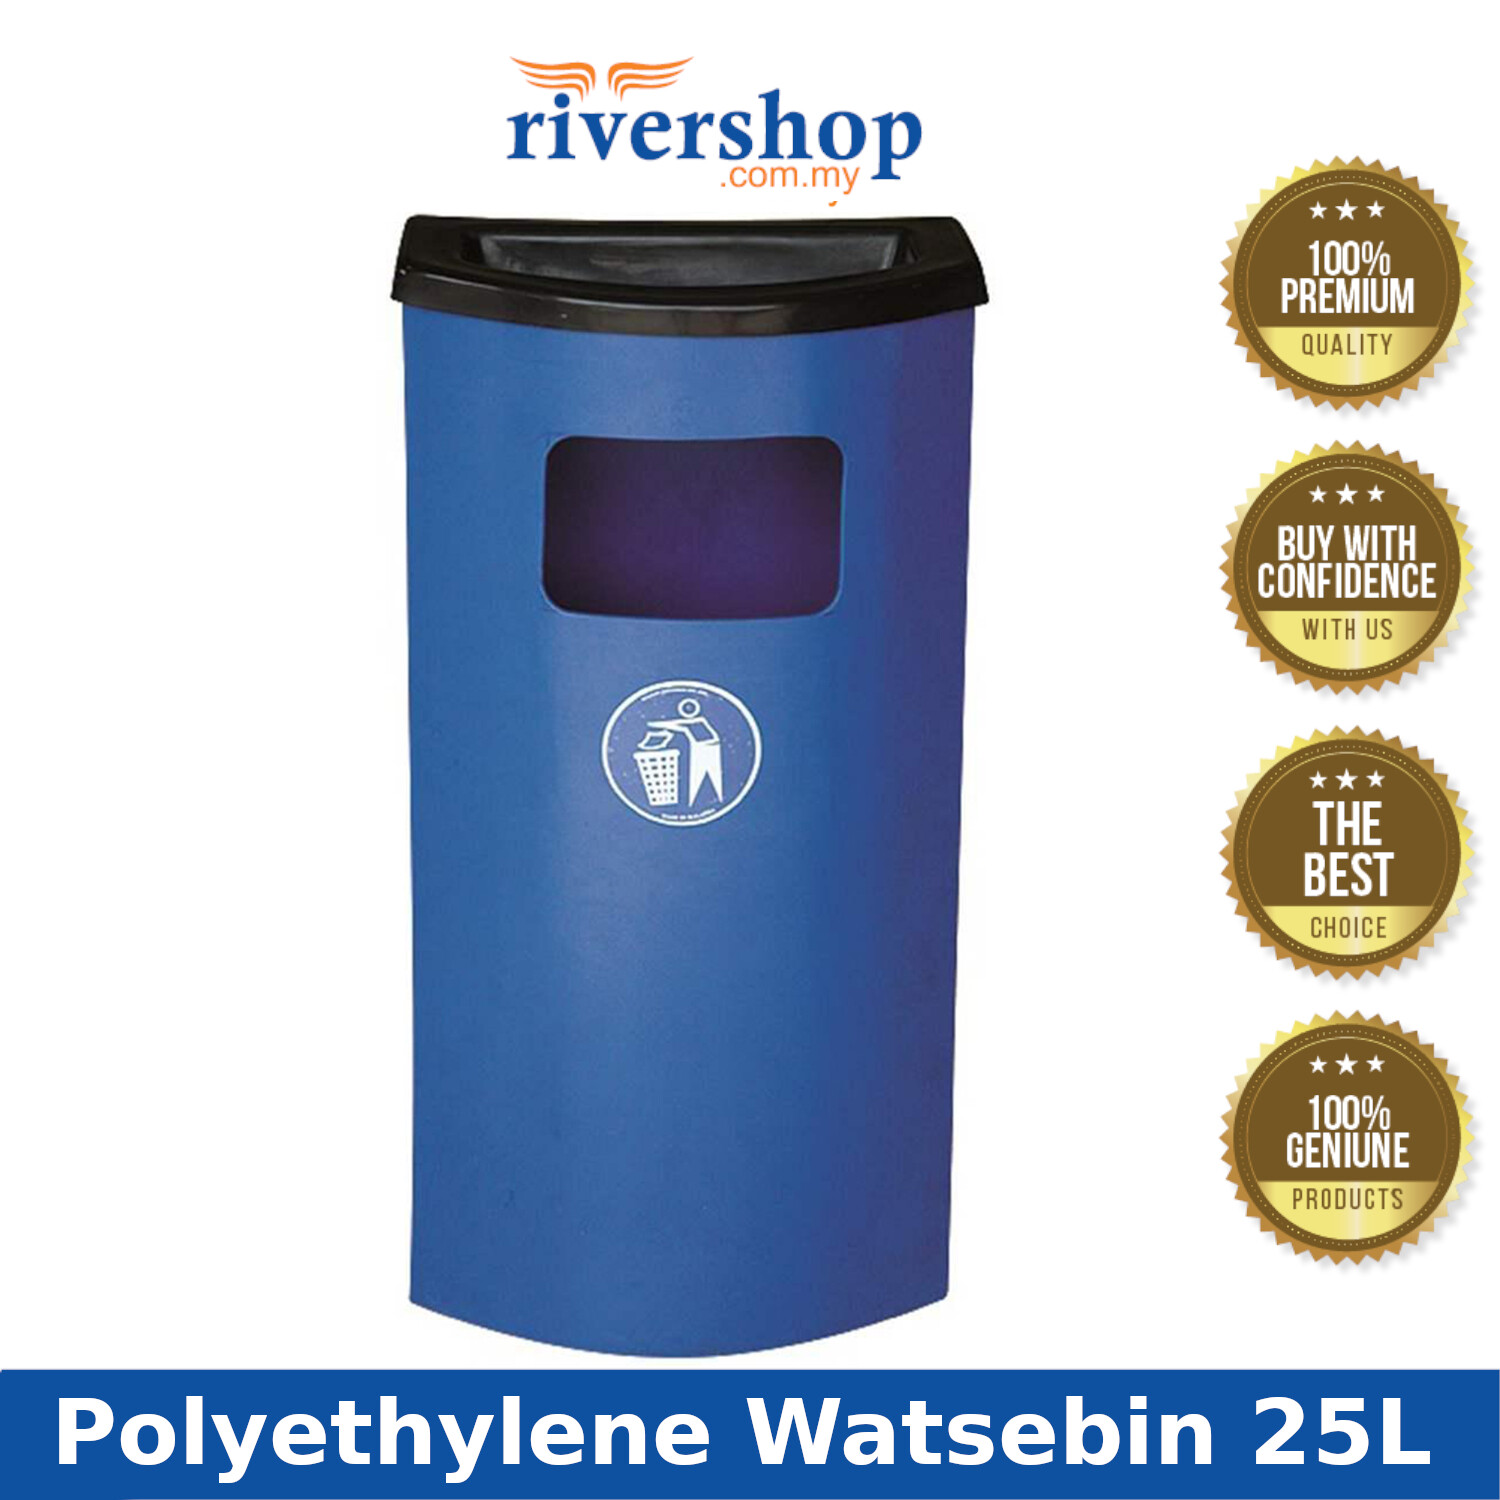 Rivershop 25Litres Multi-Purpose River 25 Polyethylene Garbage Compost Wastebin Dustbin Rubbish Trash for Home / Office / Restaurant / Commercial Tong Sampah Serbaguna